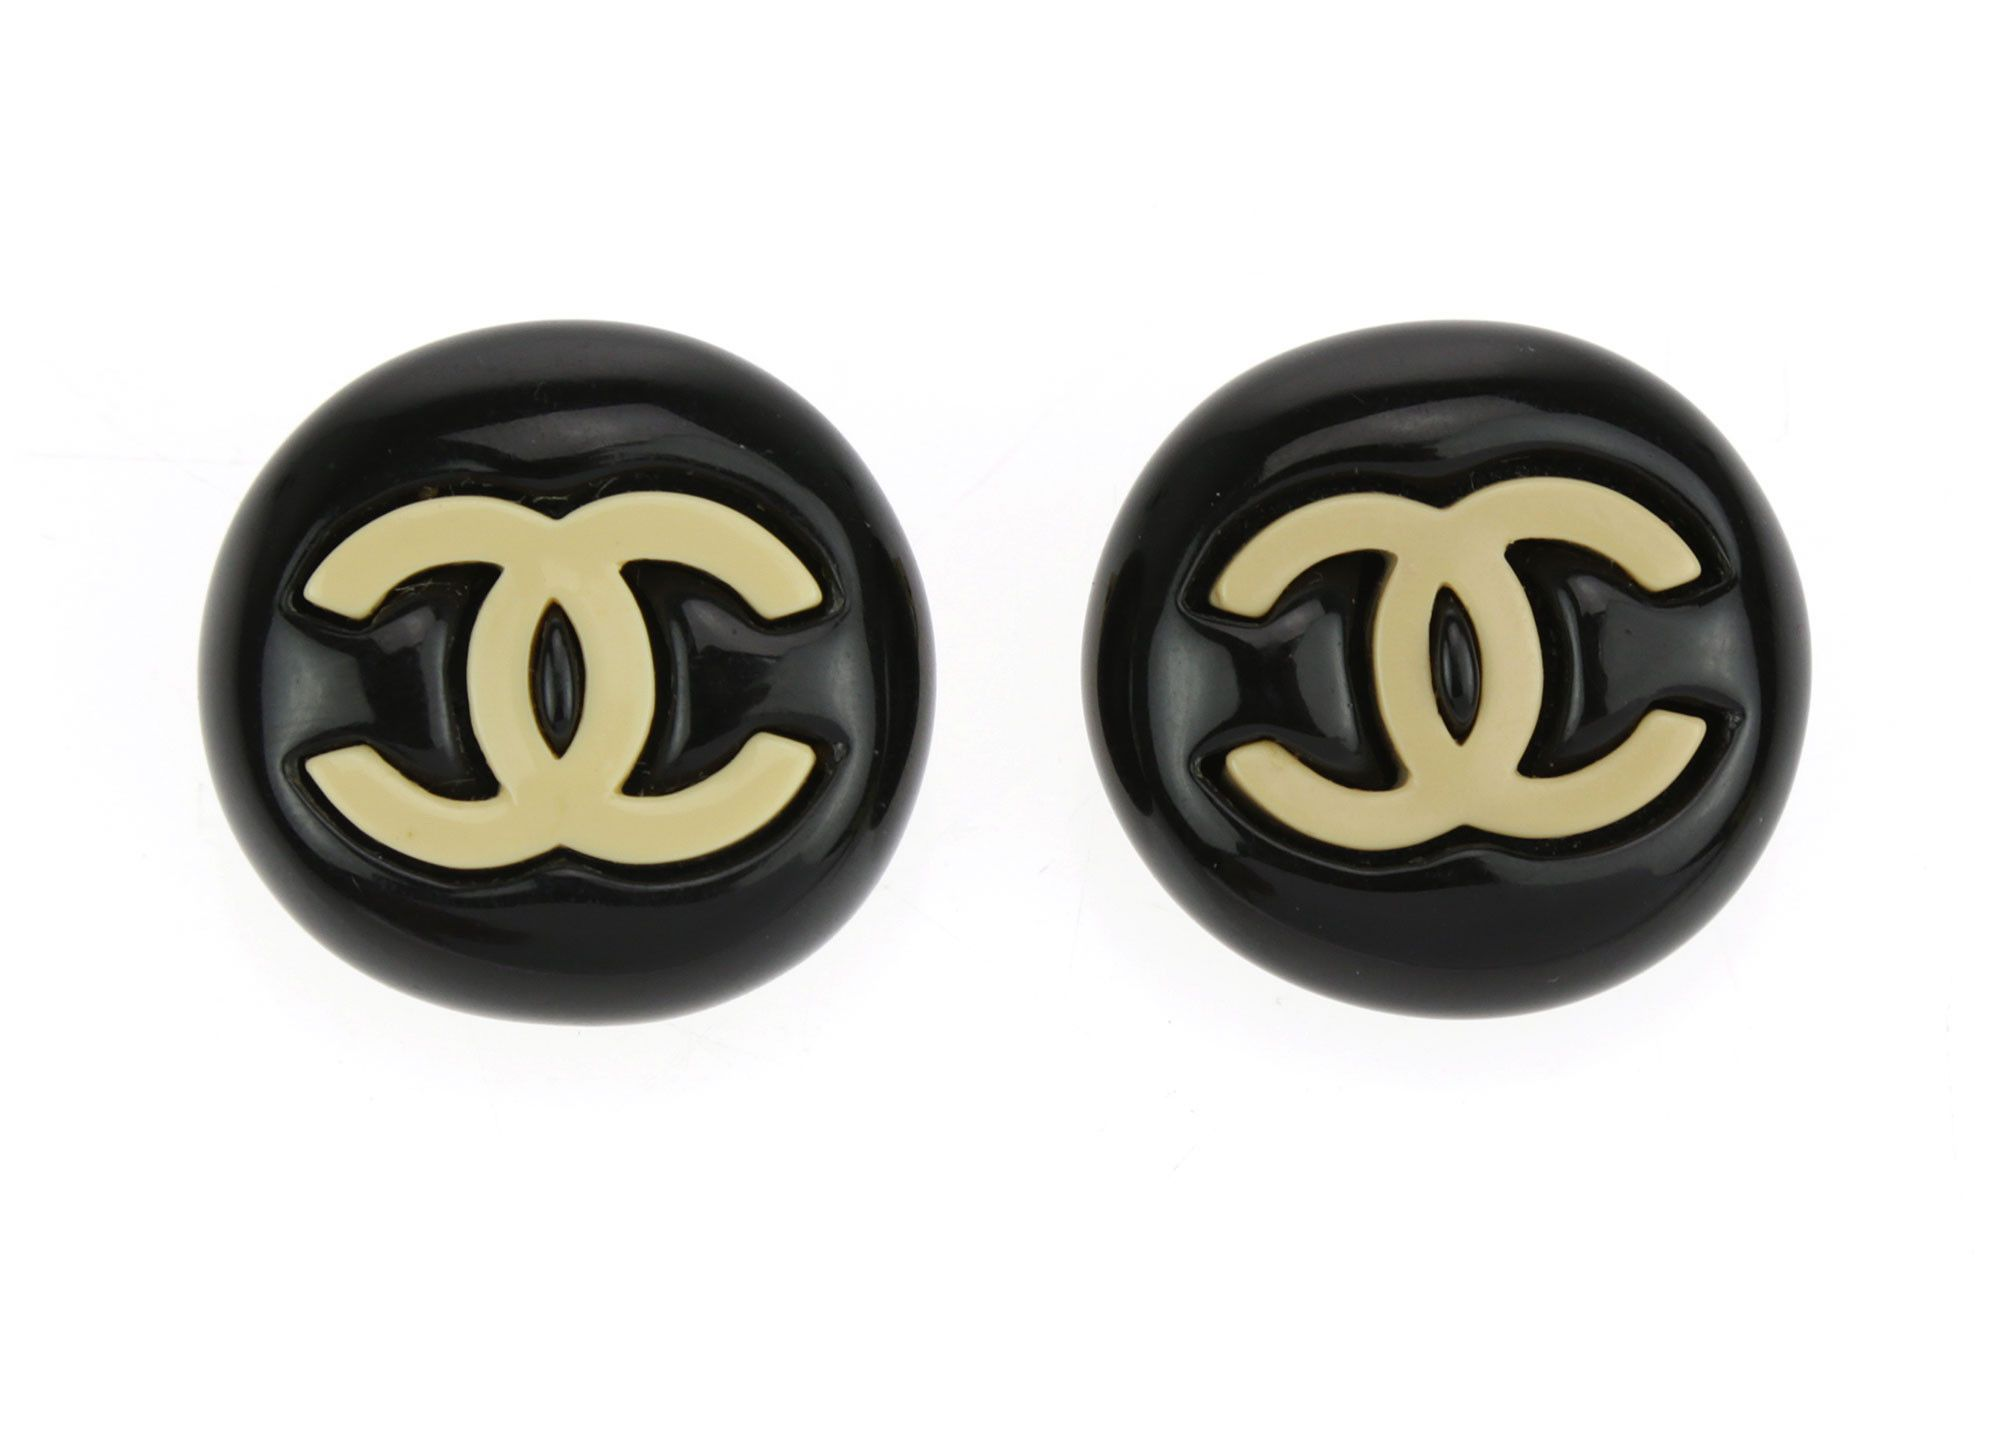 Chanel Black Resin Round CC Logo Earrings